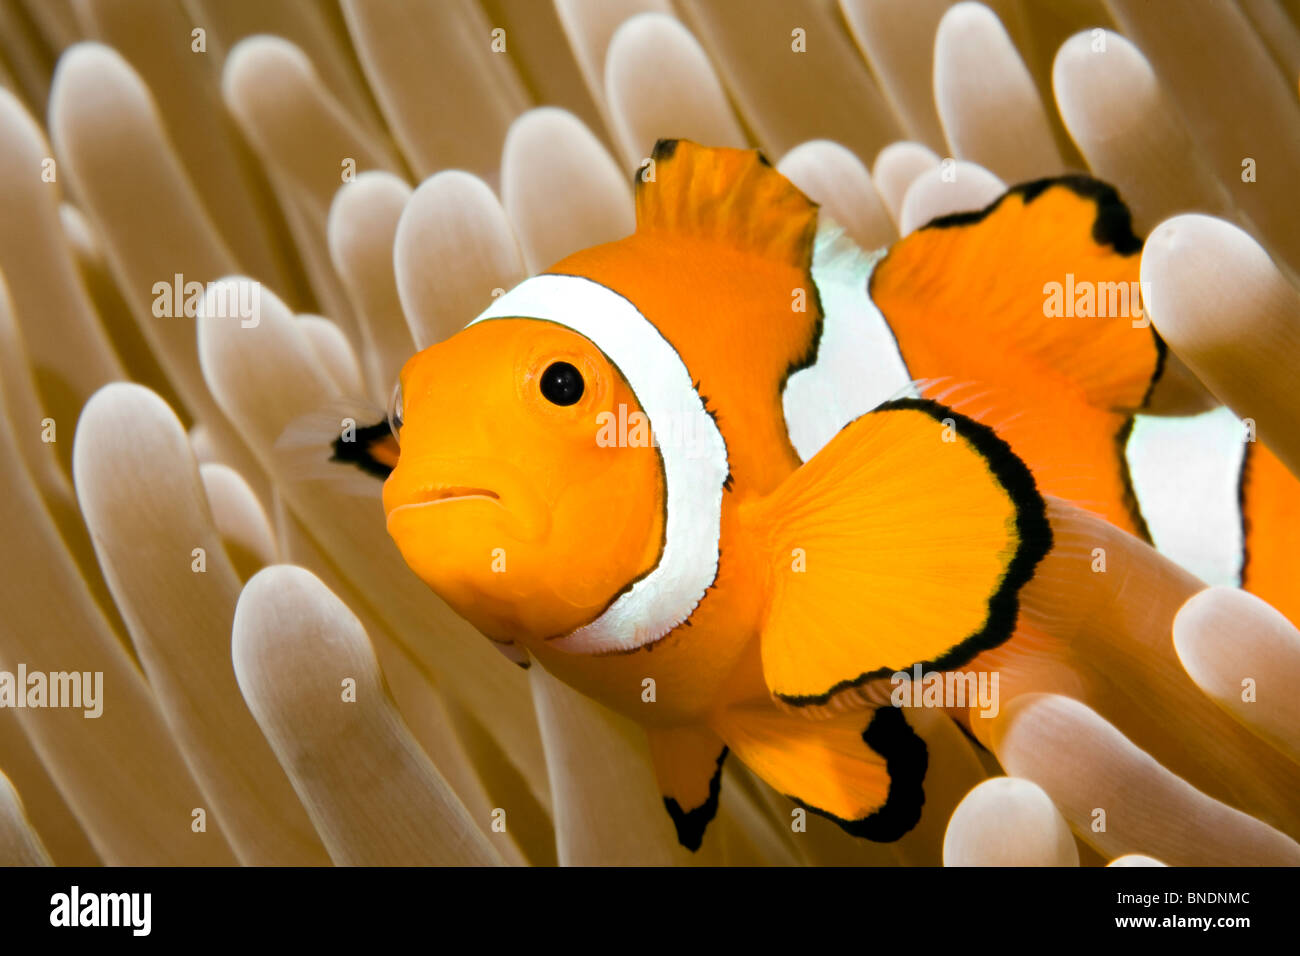 a-clown-anemonefish-in-the-tentacles-of-